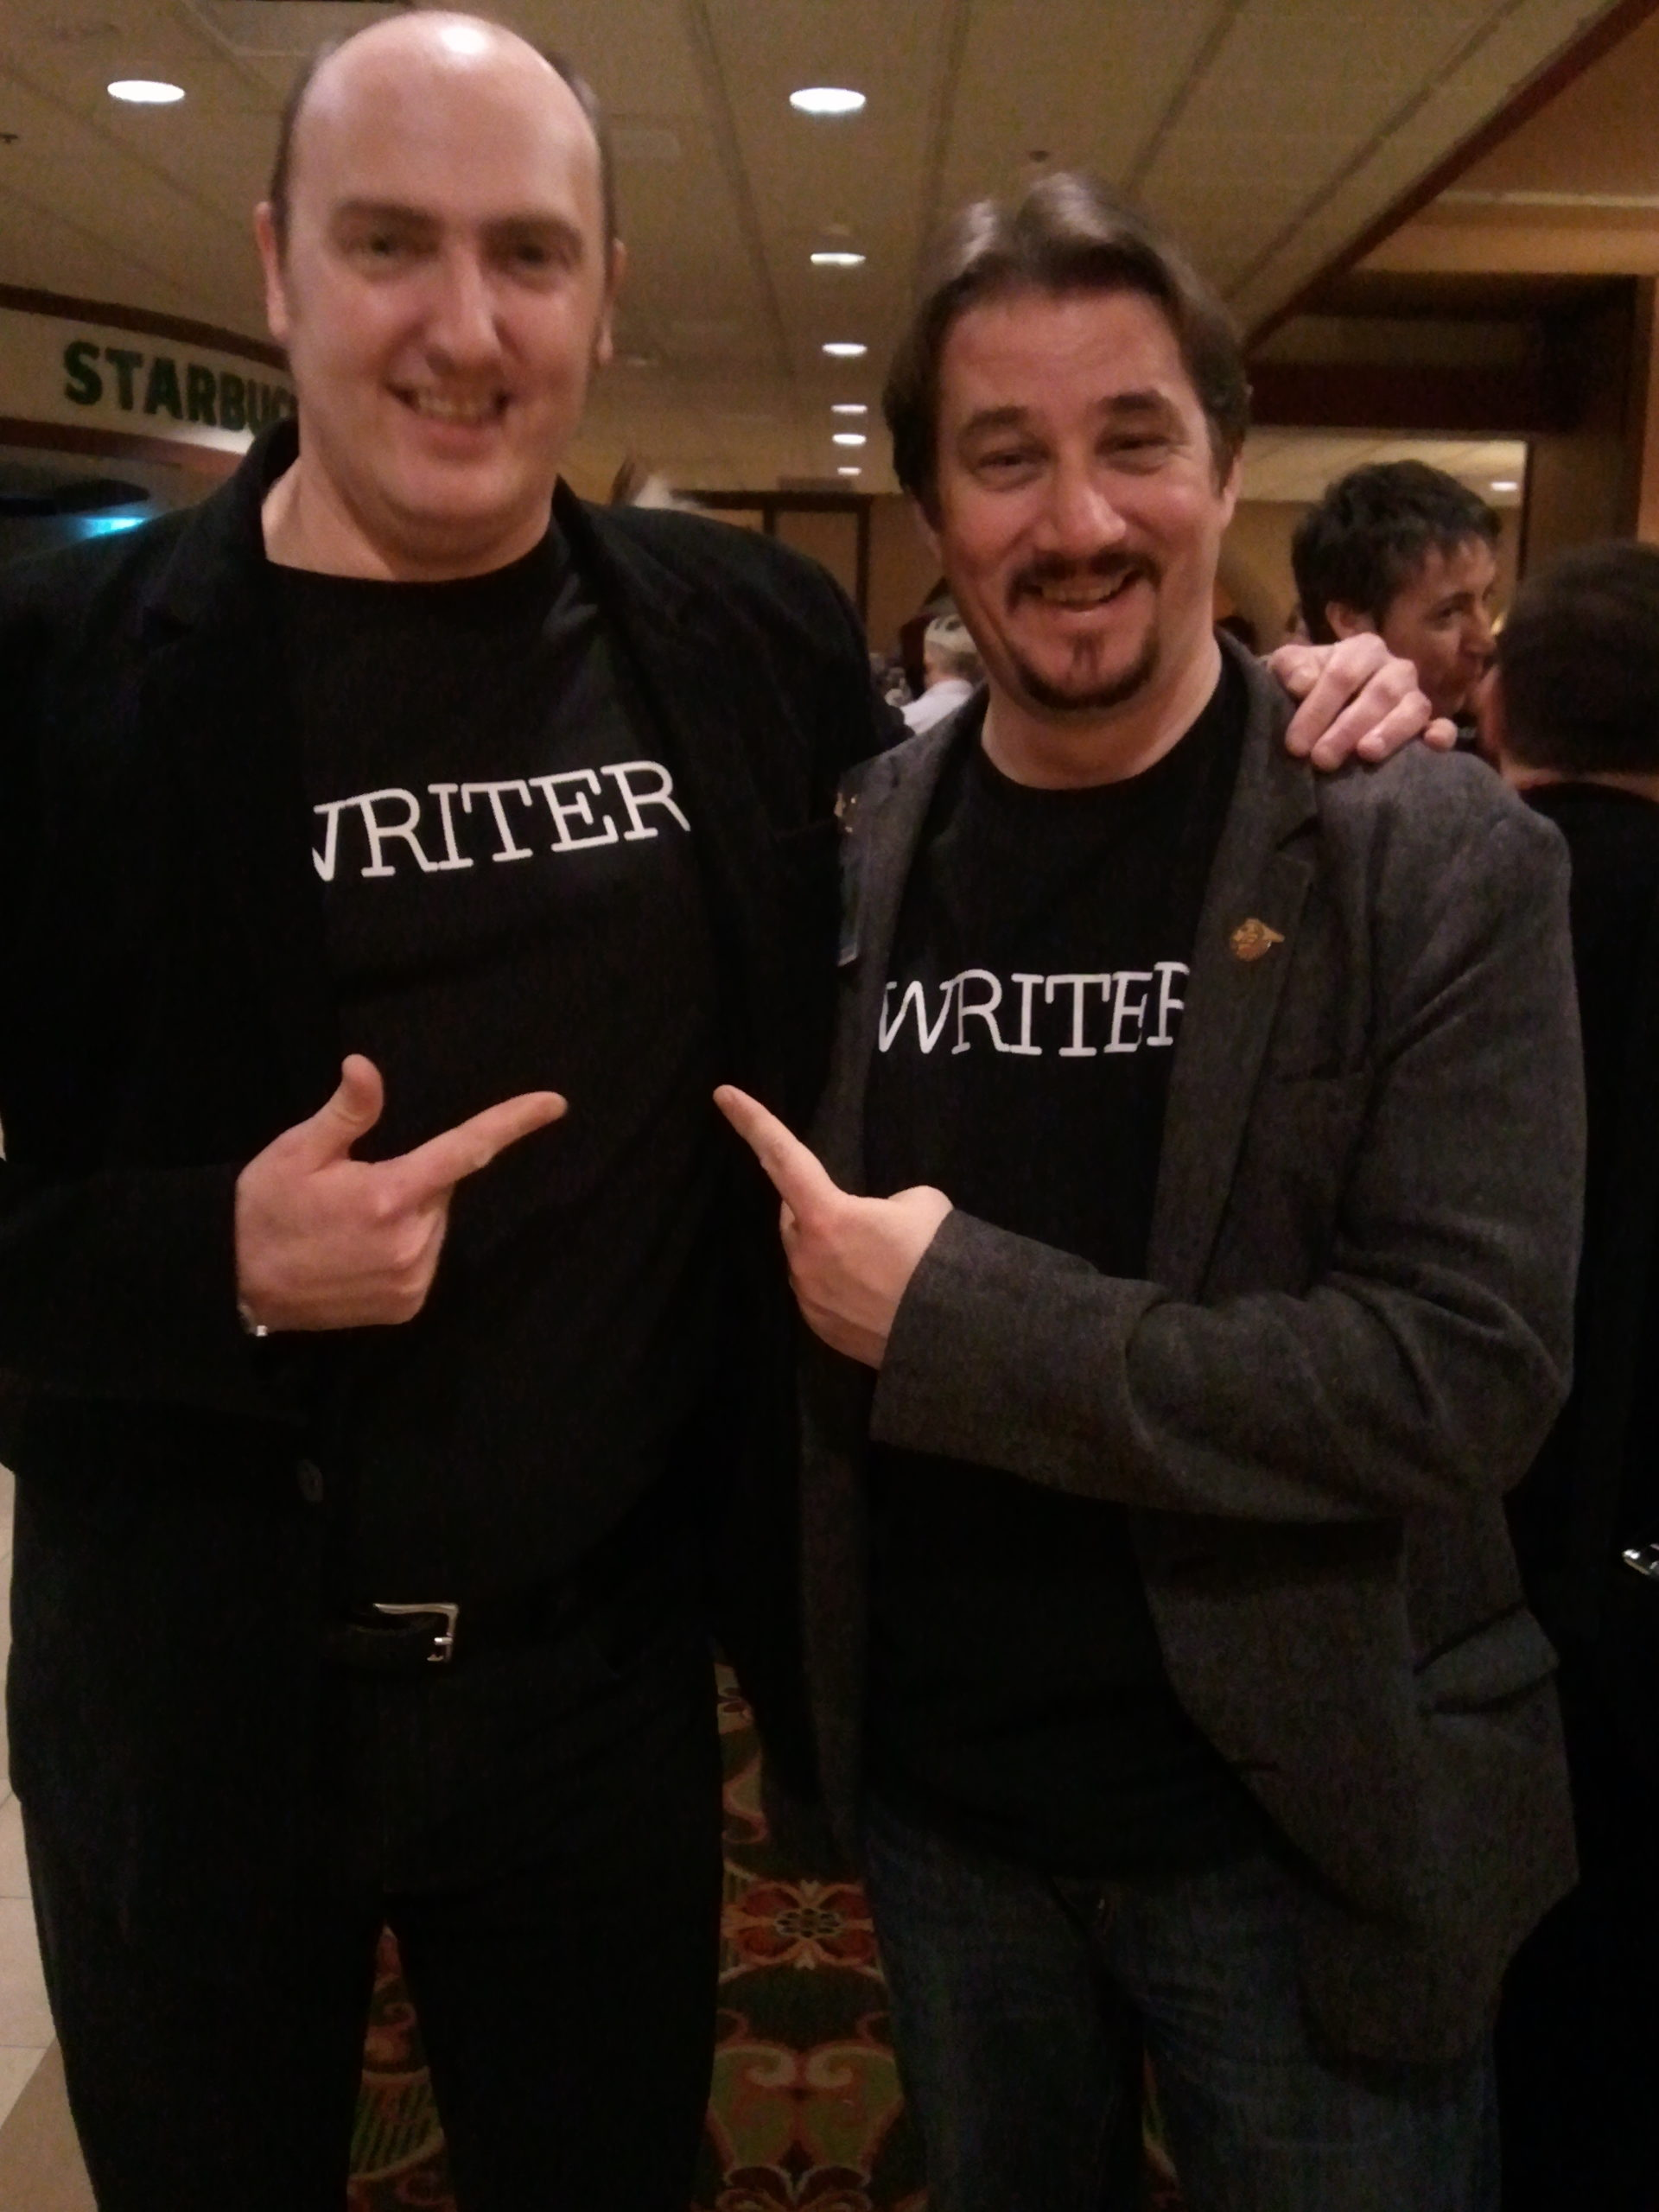 friendly drunk doctor who writers